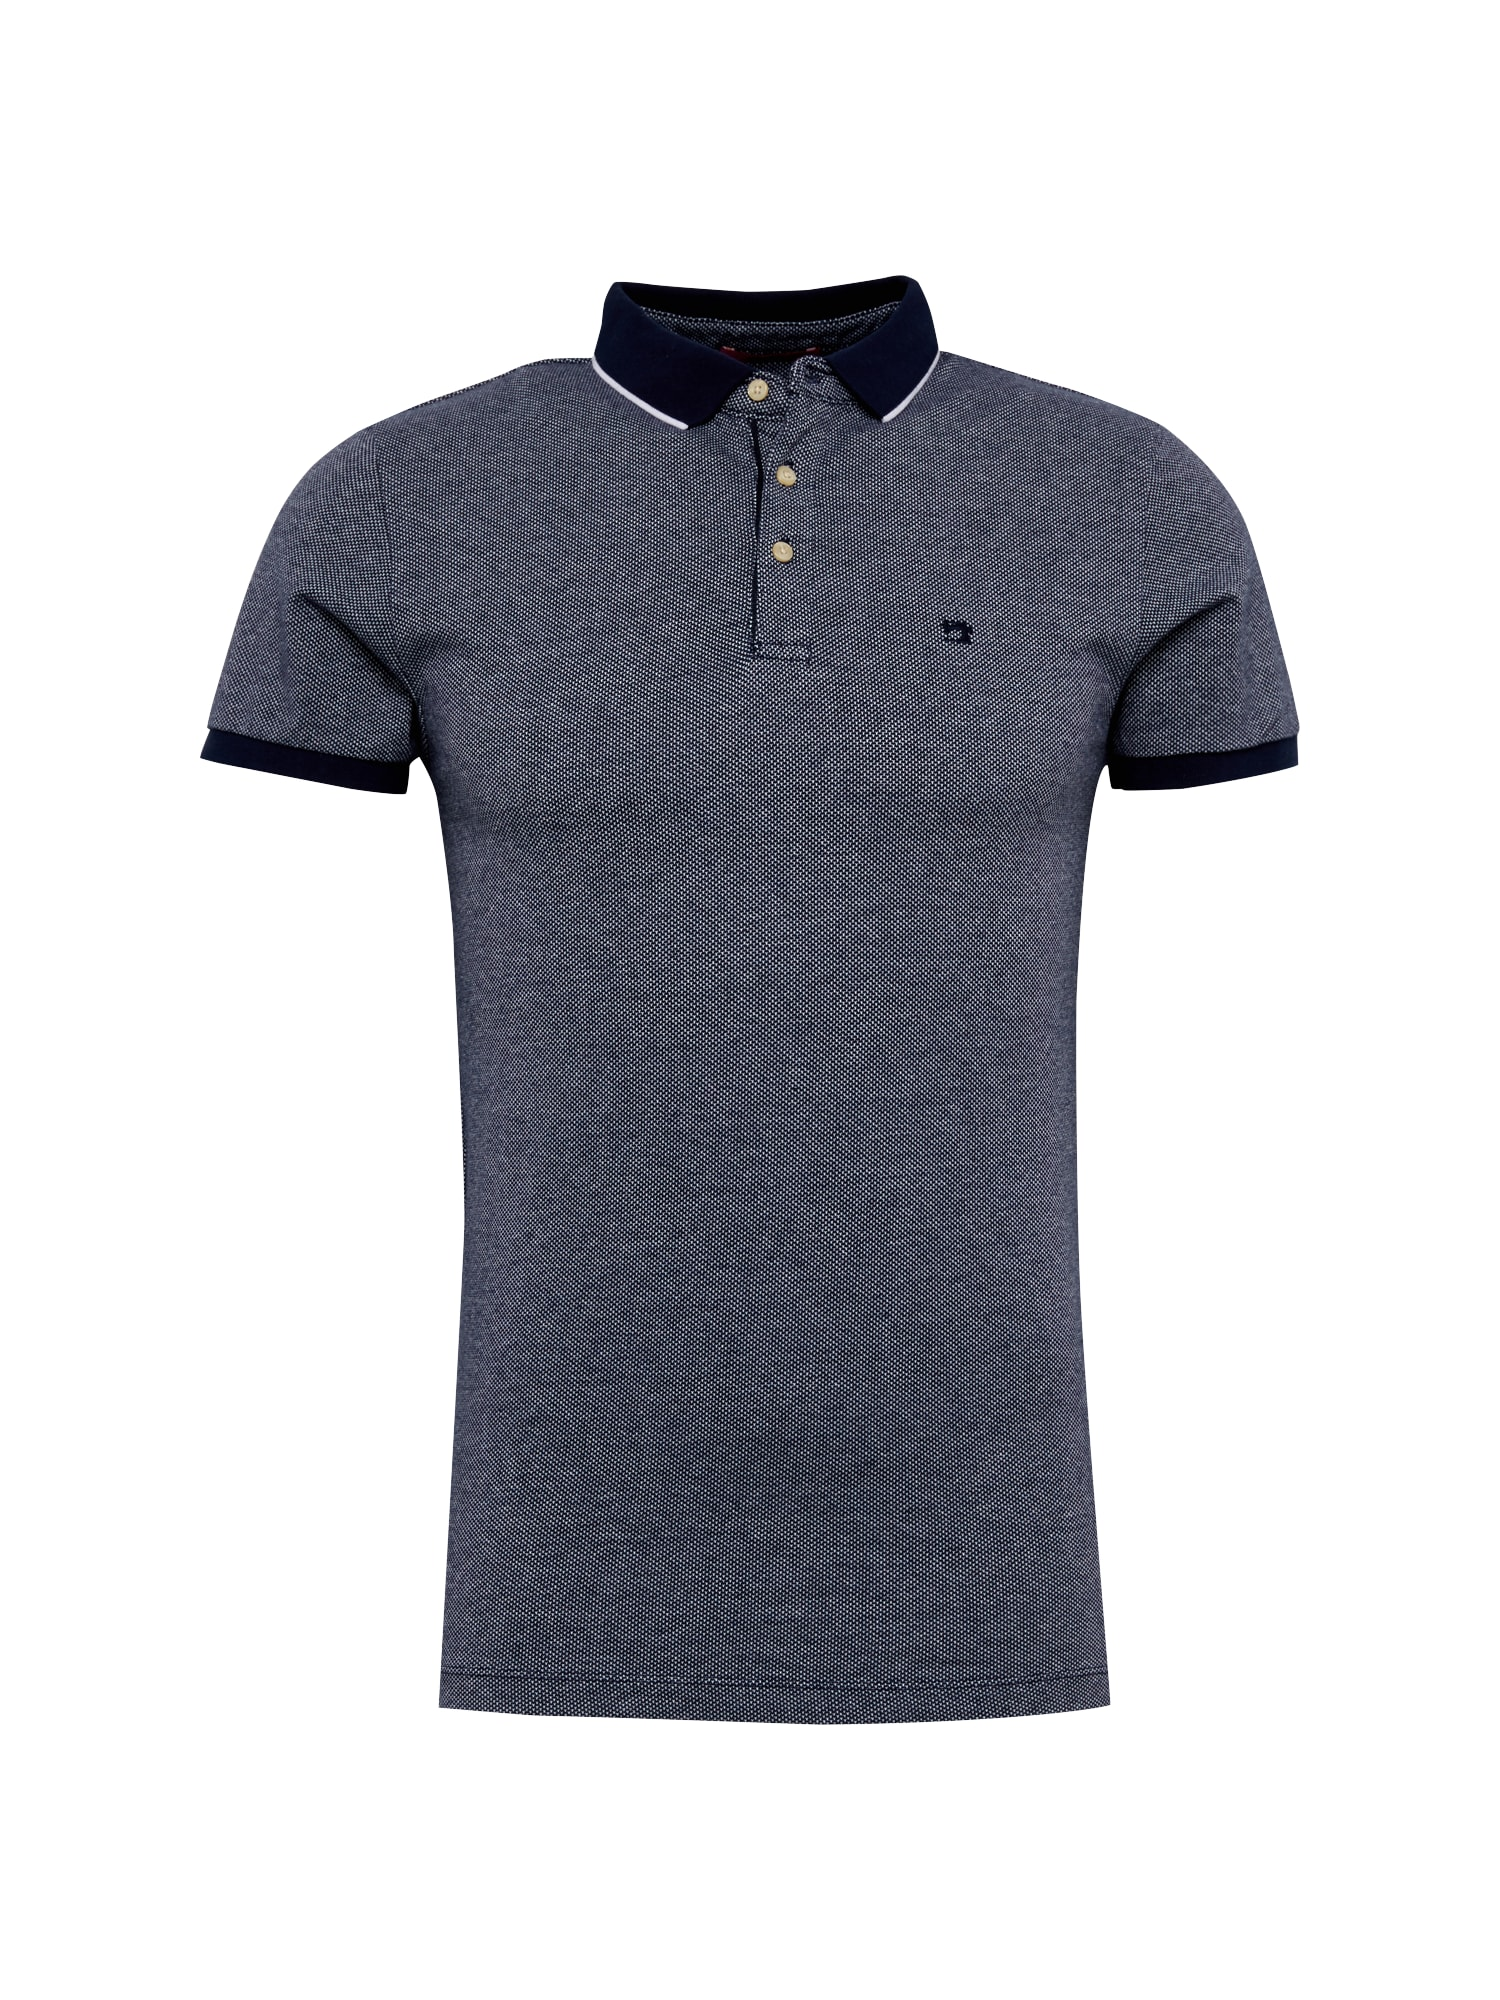 SCOTCH  and  SODA Heren Shirt Classic 2-Tone pique polo donkerblauw wit